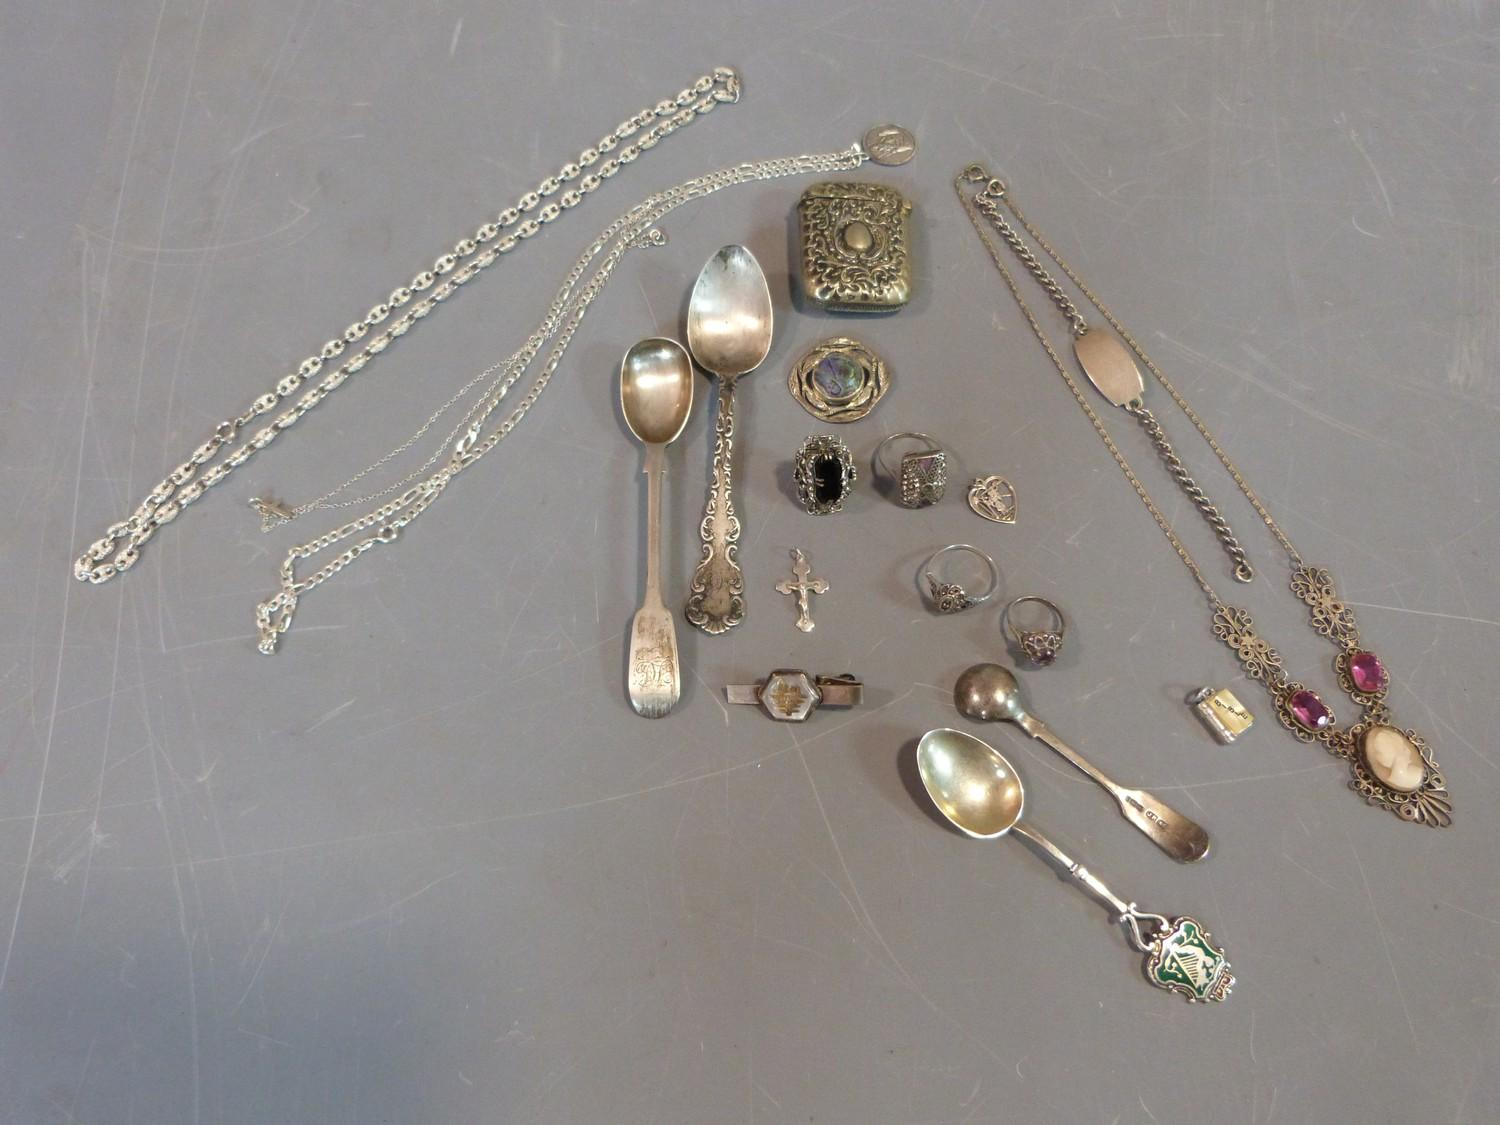 Collection of silver items, jewellery and white metal topped and collared walking cane, cameo and - Image 2 of 9